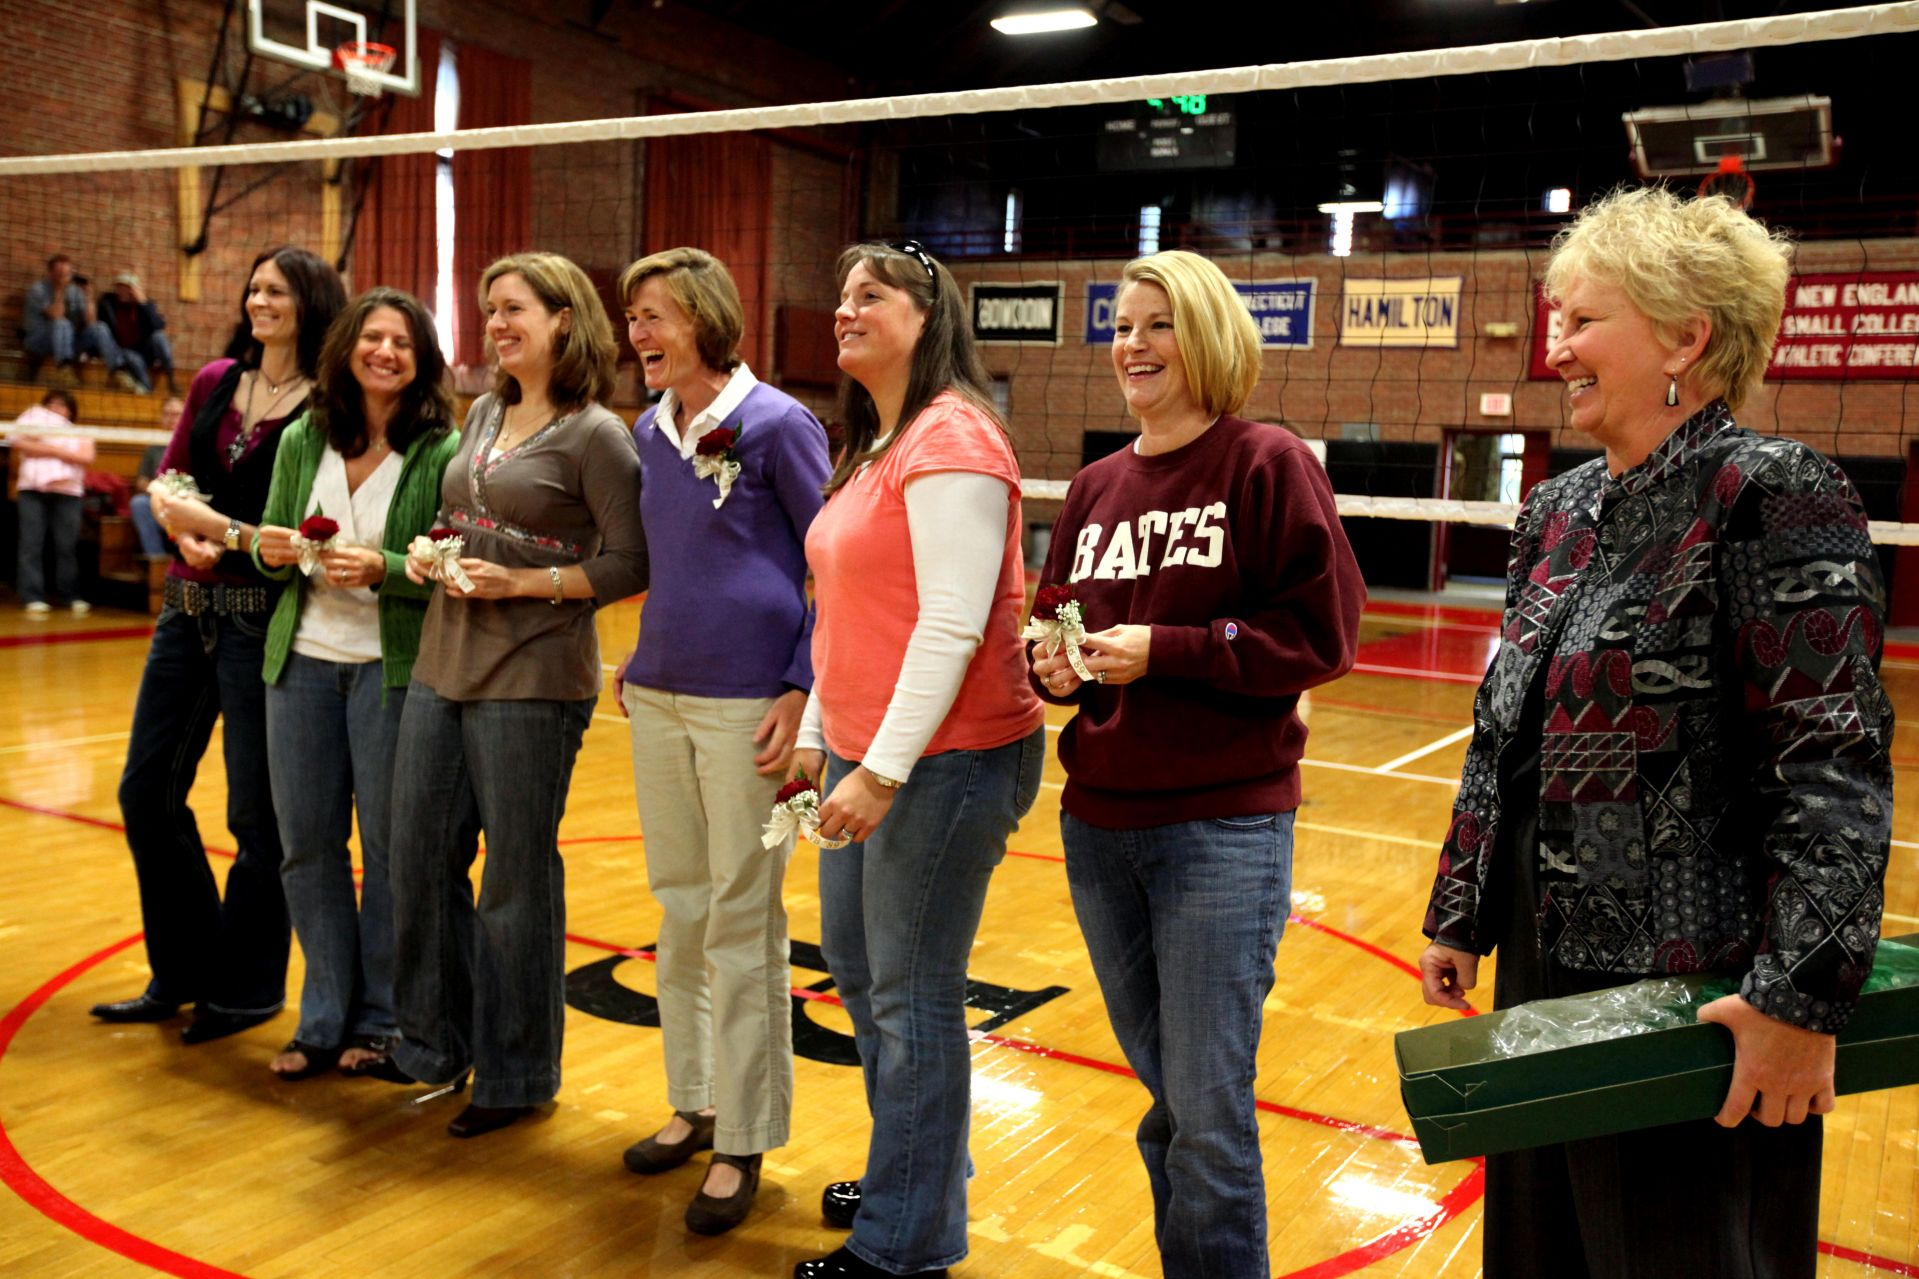 In 2009, members of the undefeated 1989 volleyball team and their coach, Marsha Graef (right), enjoyed a recognition ceremony in Alumni Gym during Homecoming Weekend. From left, Rachel Clayton '90, Cathy Meoni Ringling '90, Laurie Plante Graumann '90, Julie Roche Simplicio '91, Cindy Simonides Farina '93, Allyson Reynolds Wachtel '93, and Graef. (Phyllis Graber Jensen/Bates College)